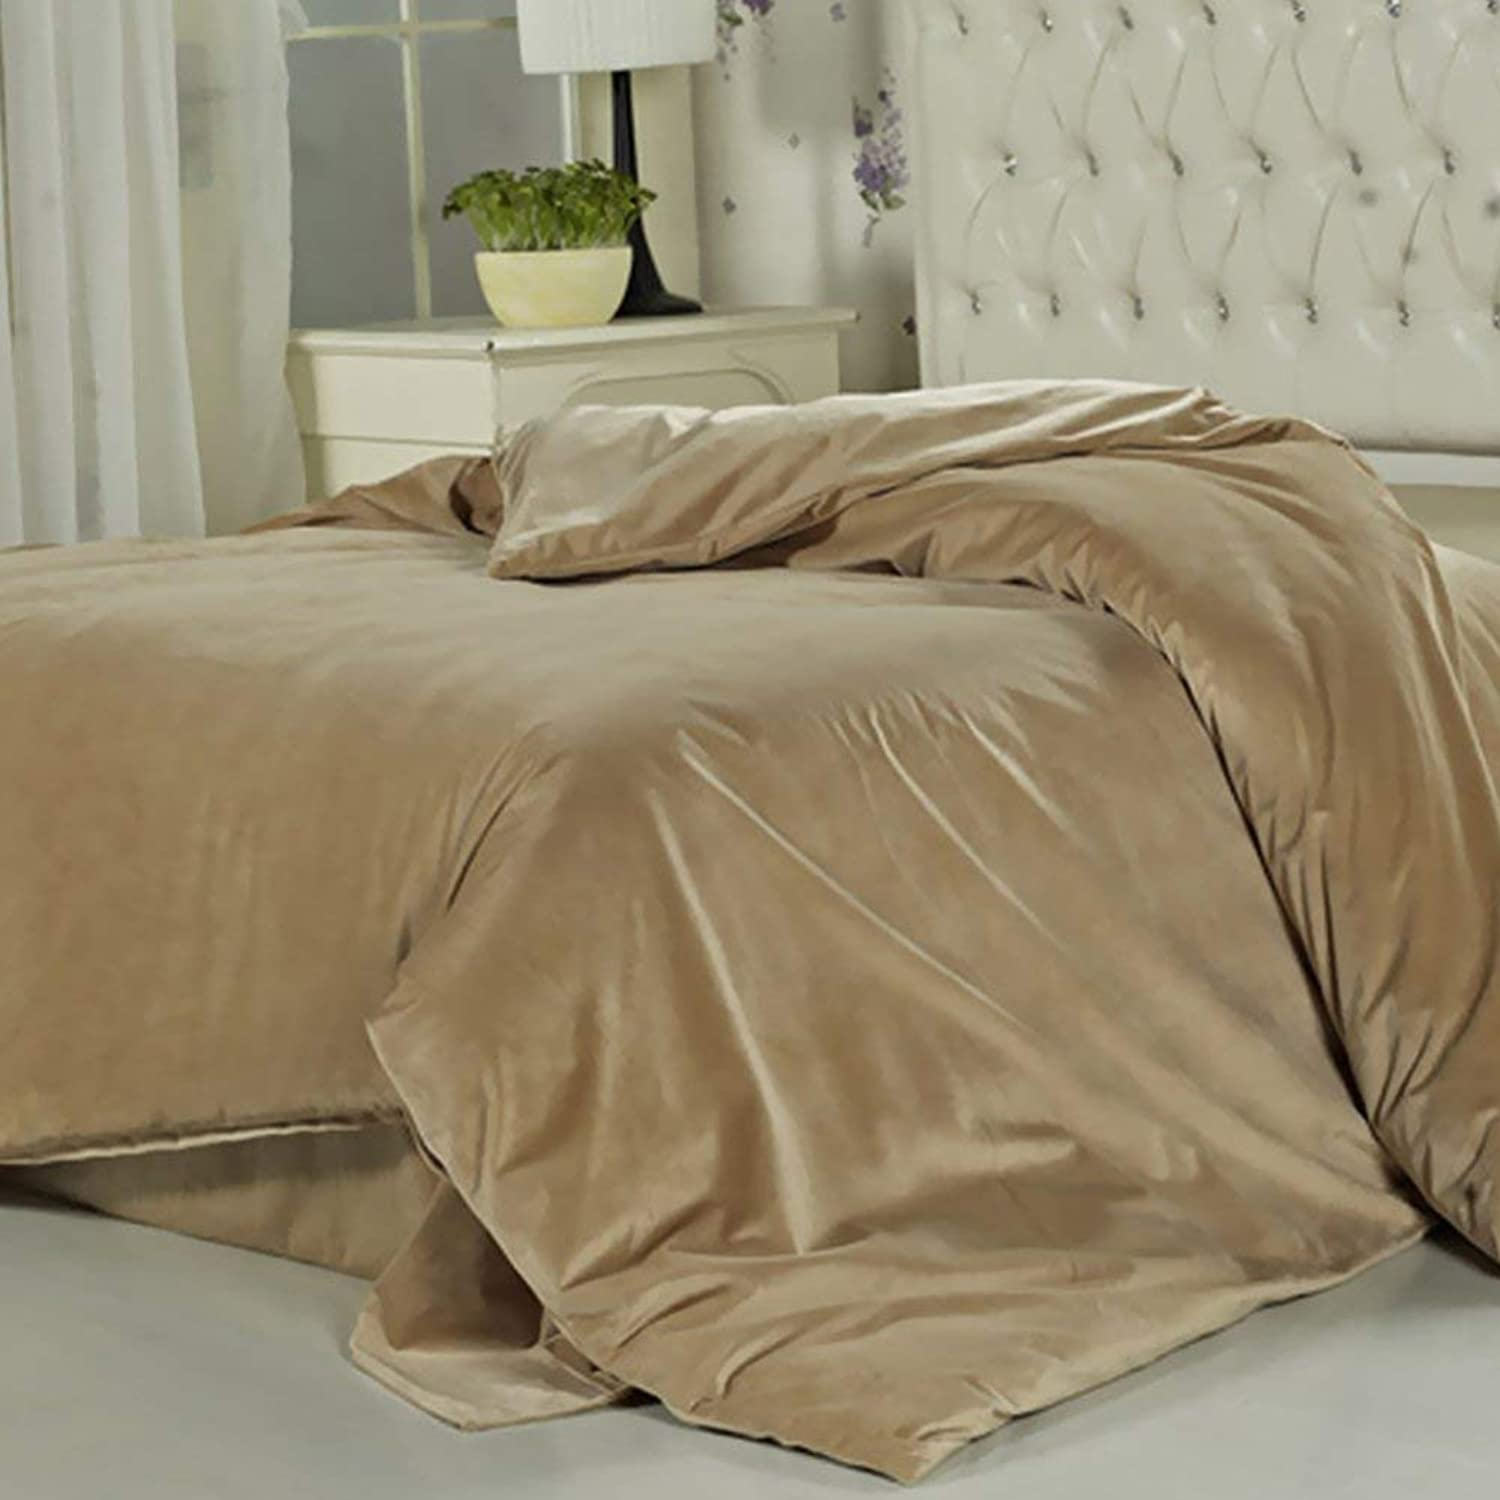 FuweiEncore Pure Cotton Quilt Cover European Style Luxurious Soft Comfortable Zip Light Breathable Durable Prevent AllergyB 200x230cm(79x91inch) (color   B, Size   152x218cm(60x86inch))